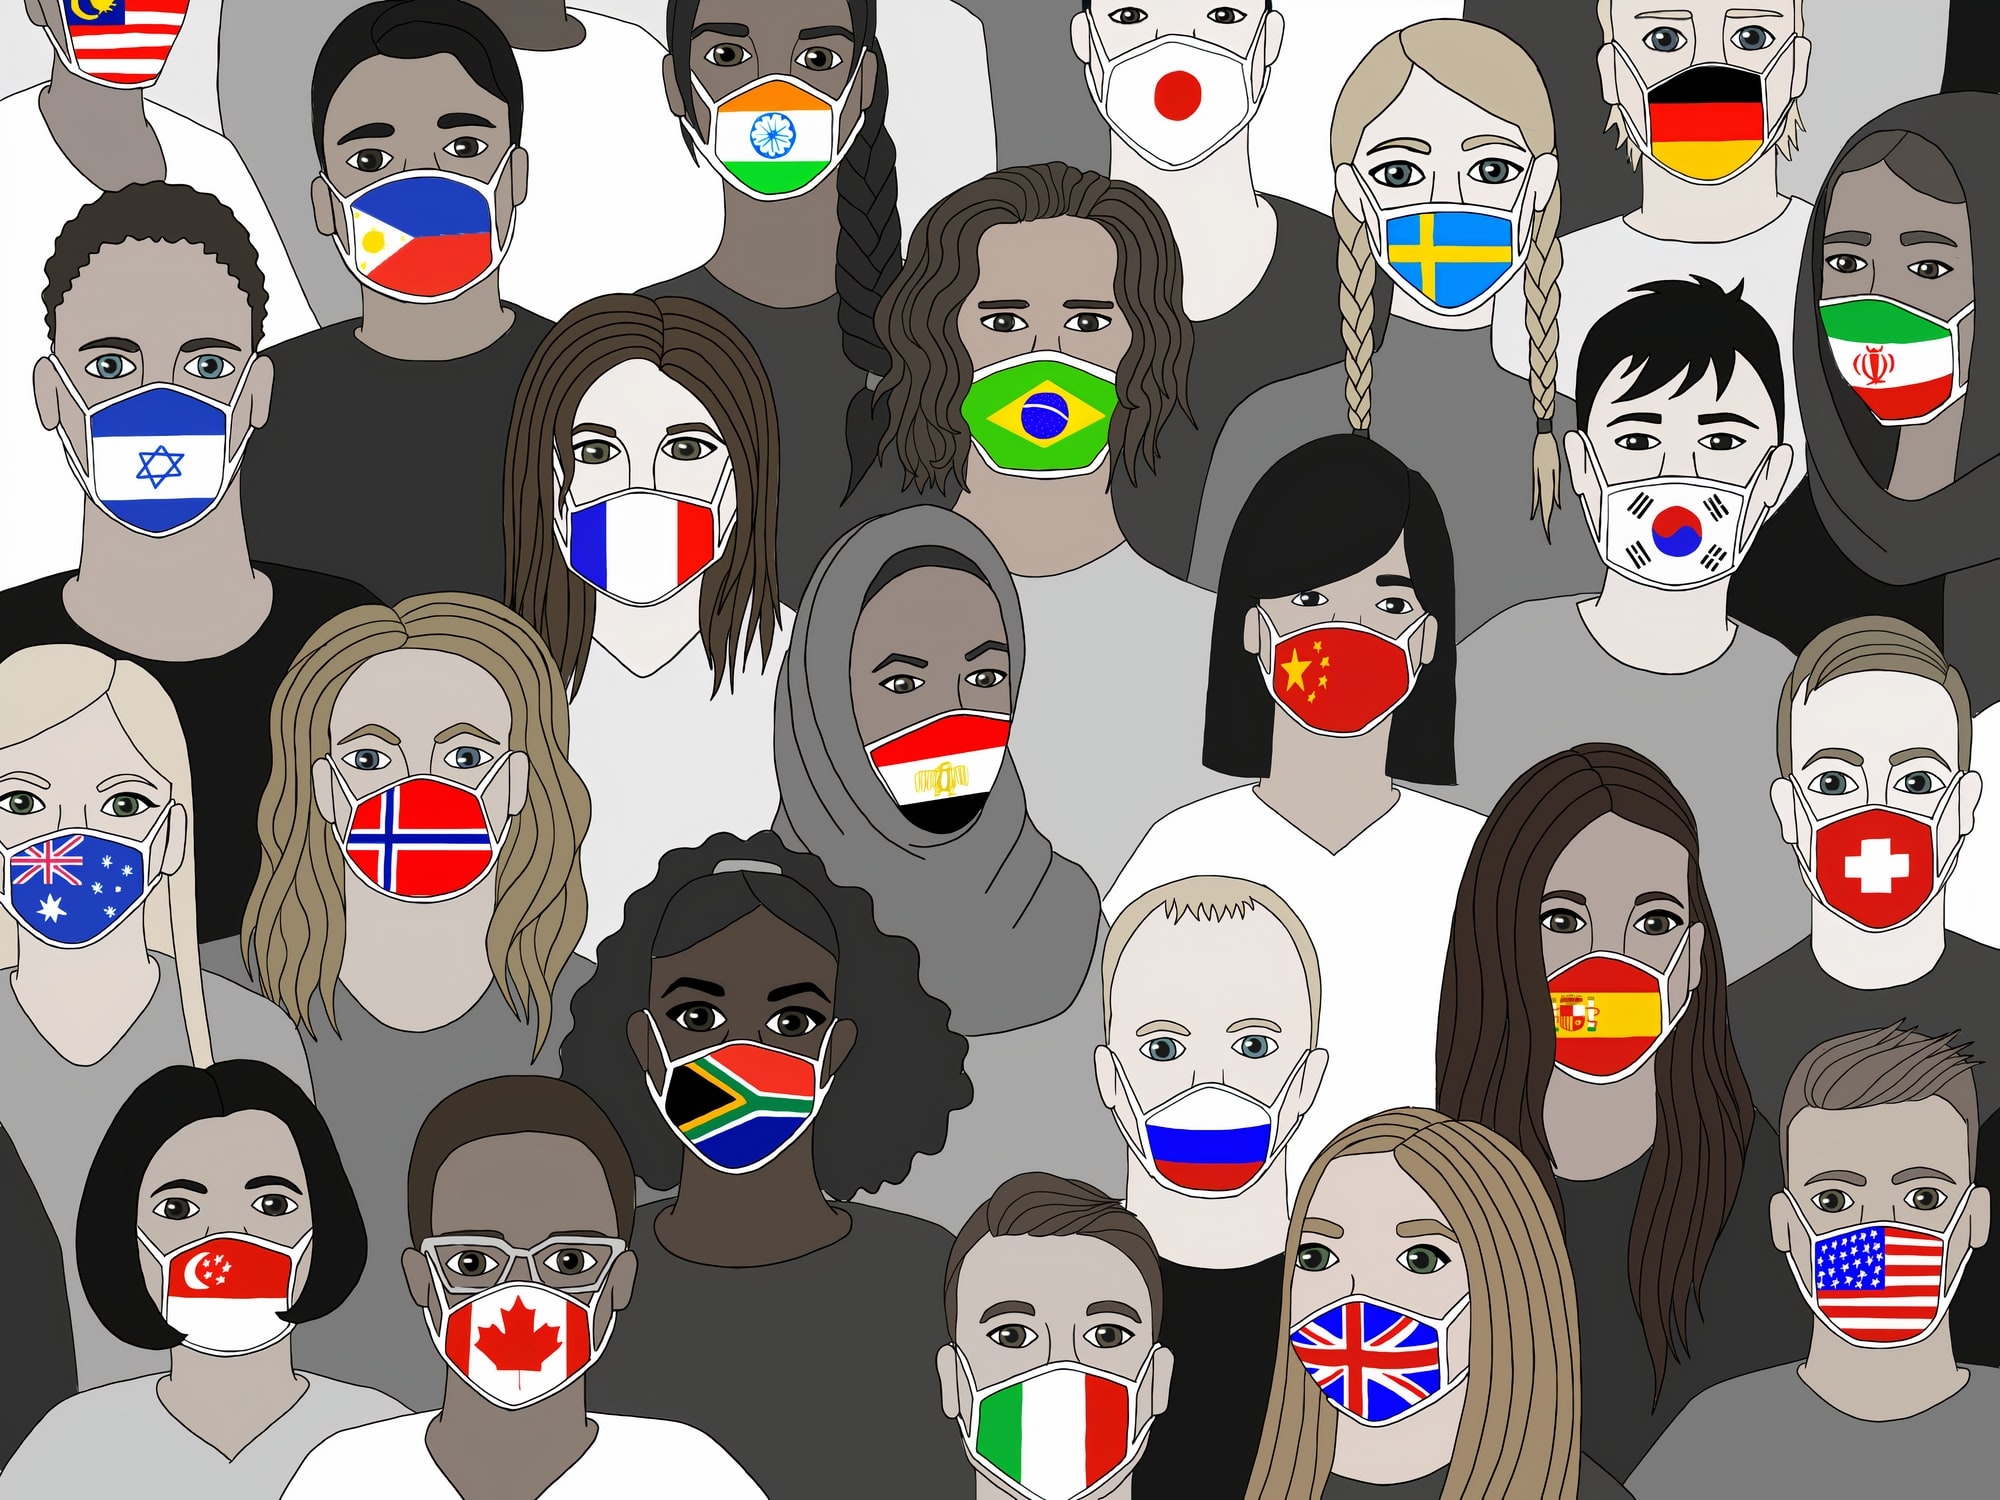 Together We Unite. My illustration shows the power of togetherness, using images people from different COVID19 impacted countries. The facemask has become a symbol of protection during the pandemic. By imposing flag images on the masks it showcases the on going efforts made by effected nations to ensure the safety of their citizens. Image created by Laura Makaltses. Submitted for United Nations Global Call Out To Creatives - help stop the spread of COVID-19.